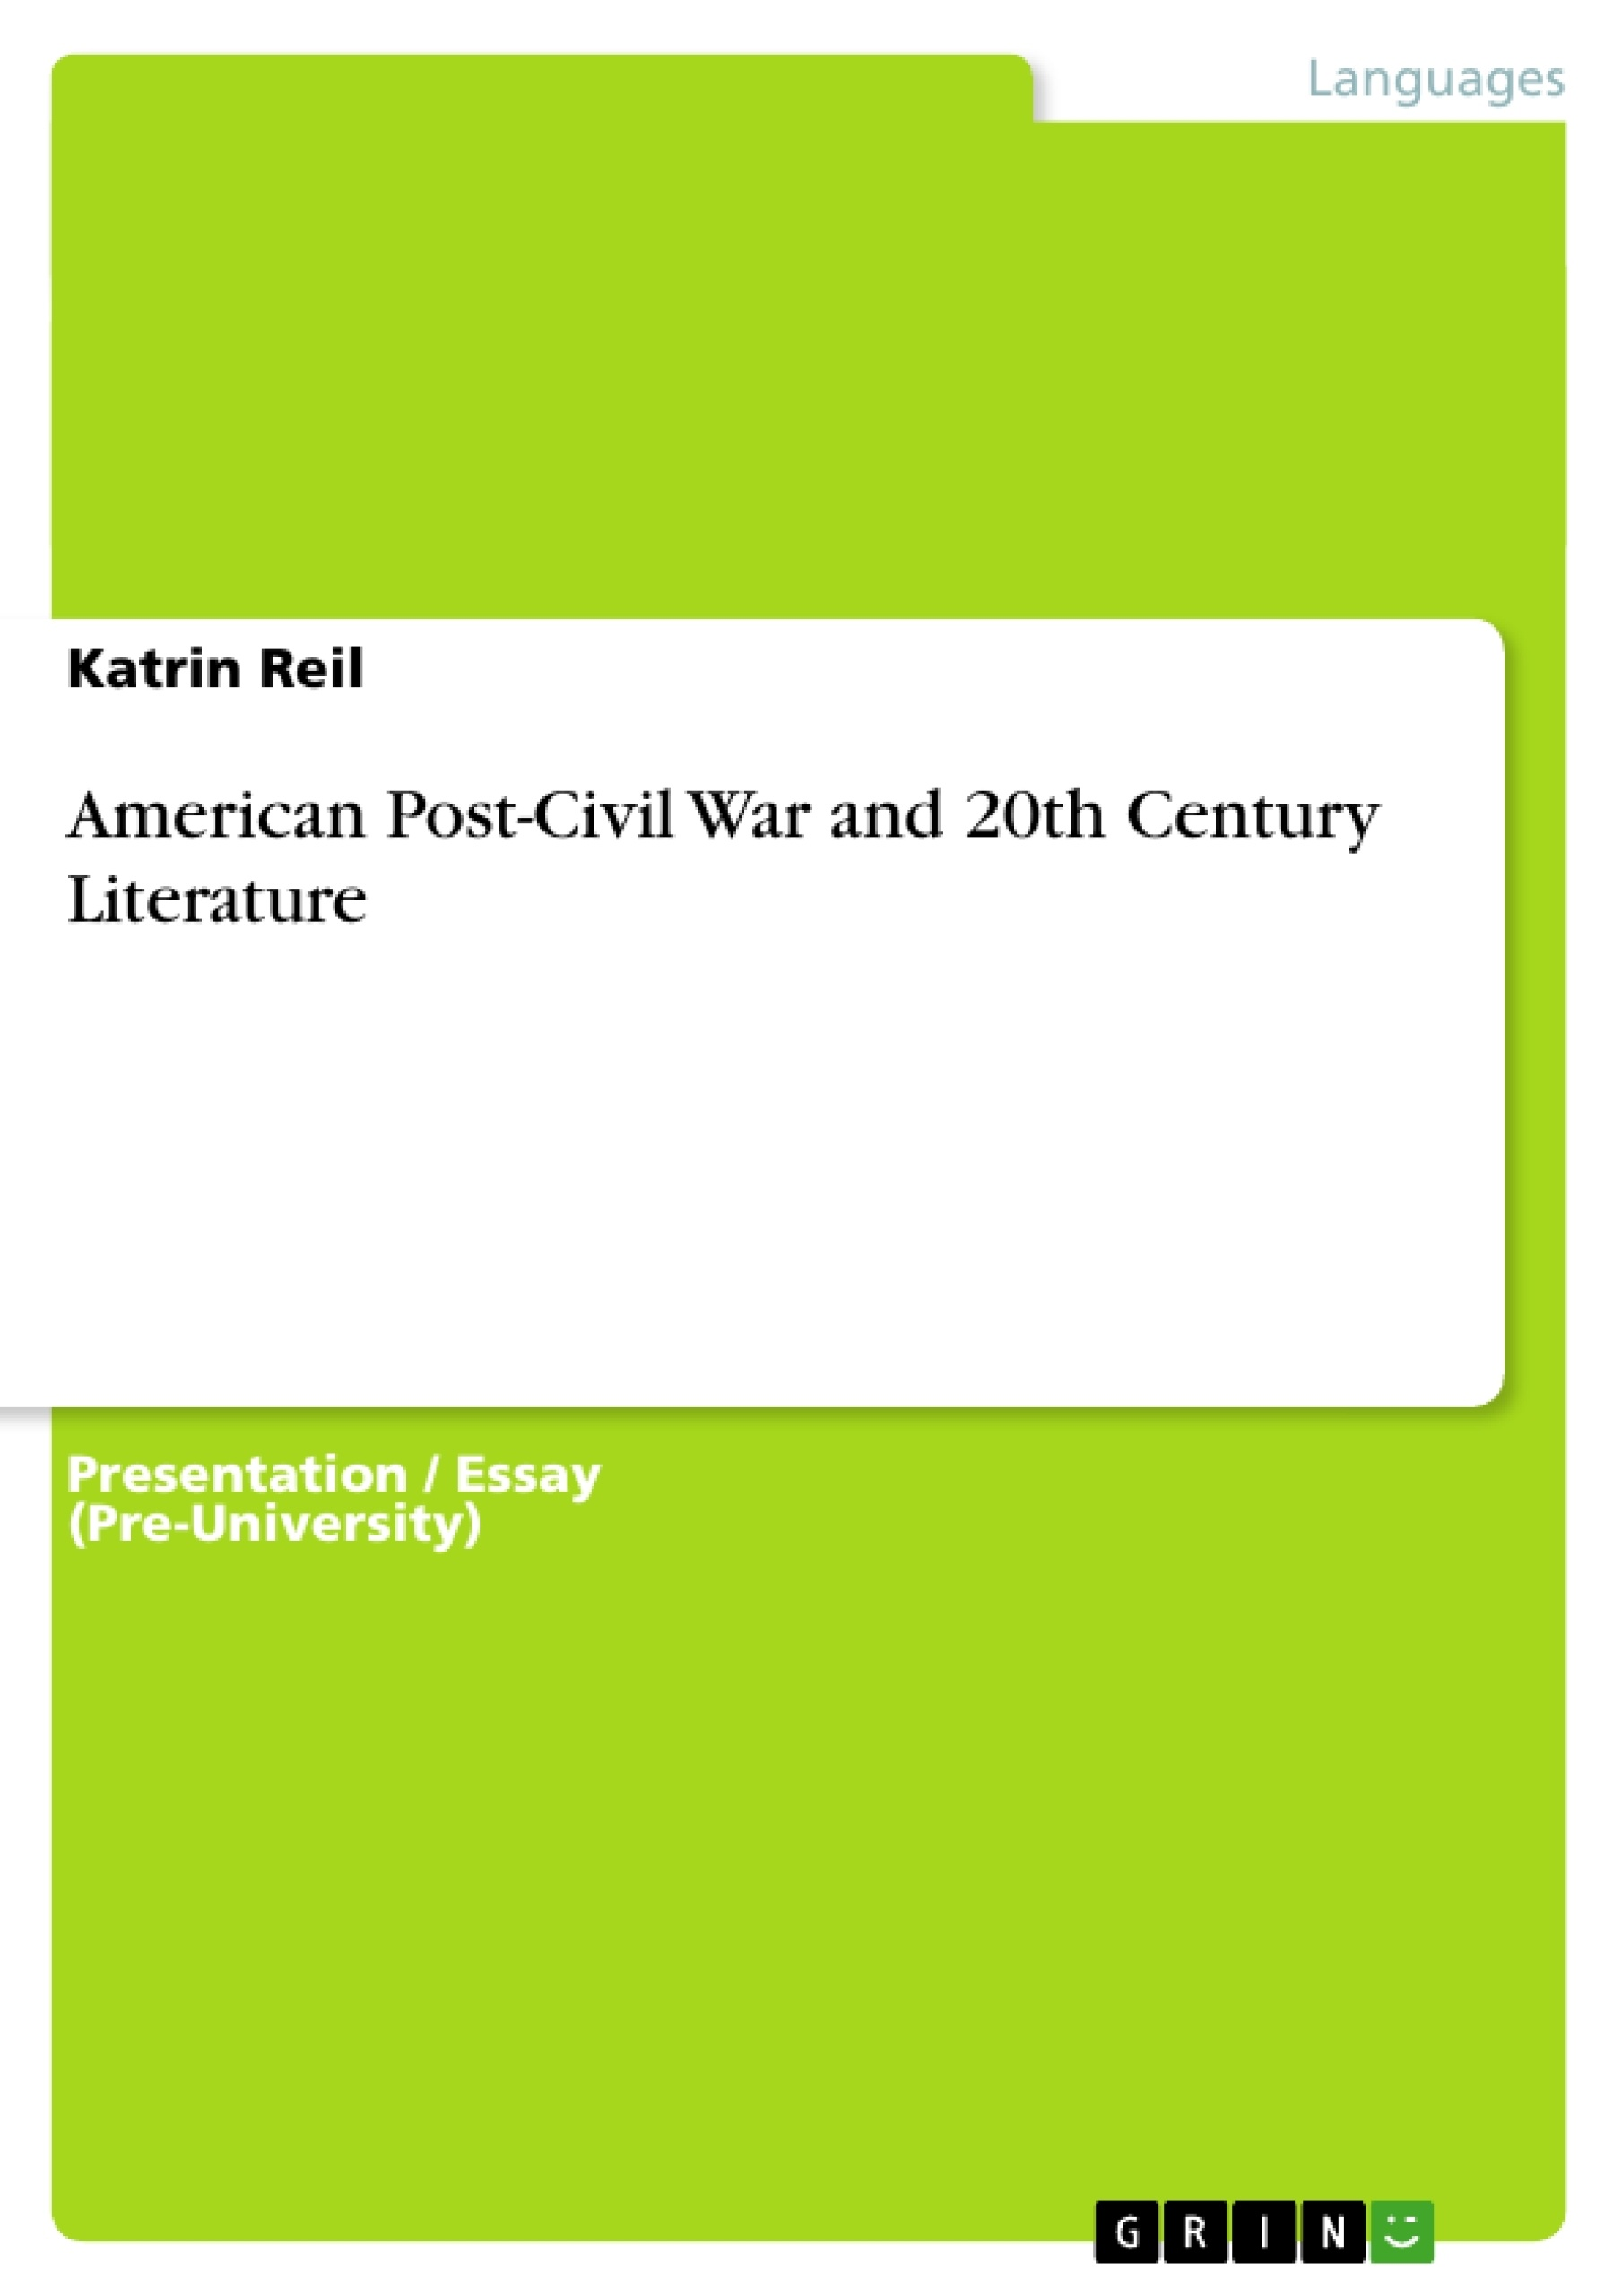 Title: American Post-Civil War and 20th Century Literature